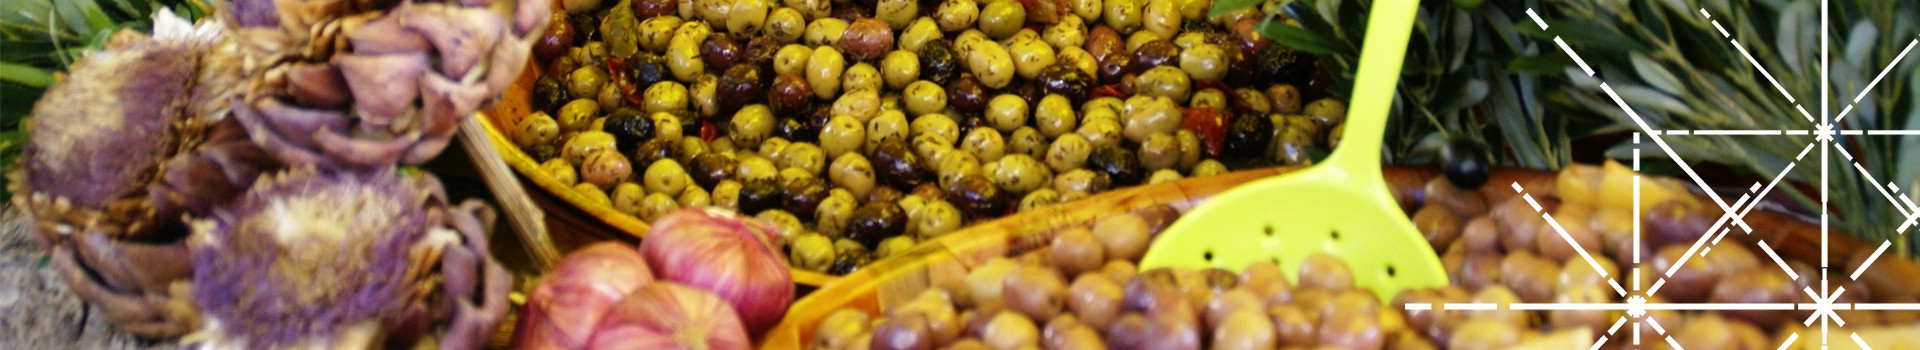 olives-ail-provence-occitane-tetiere-croisee-12